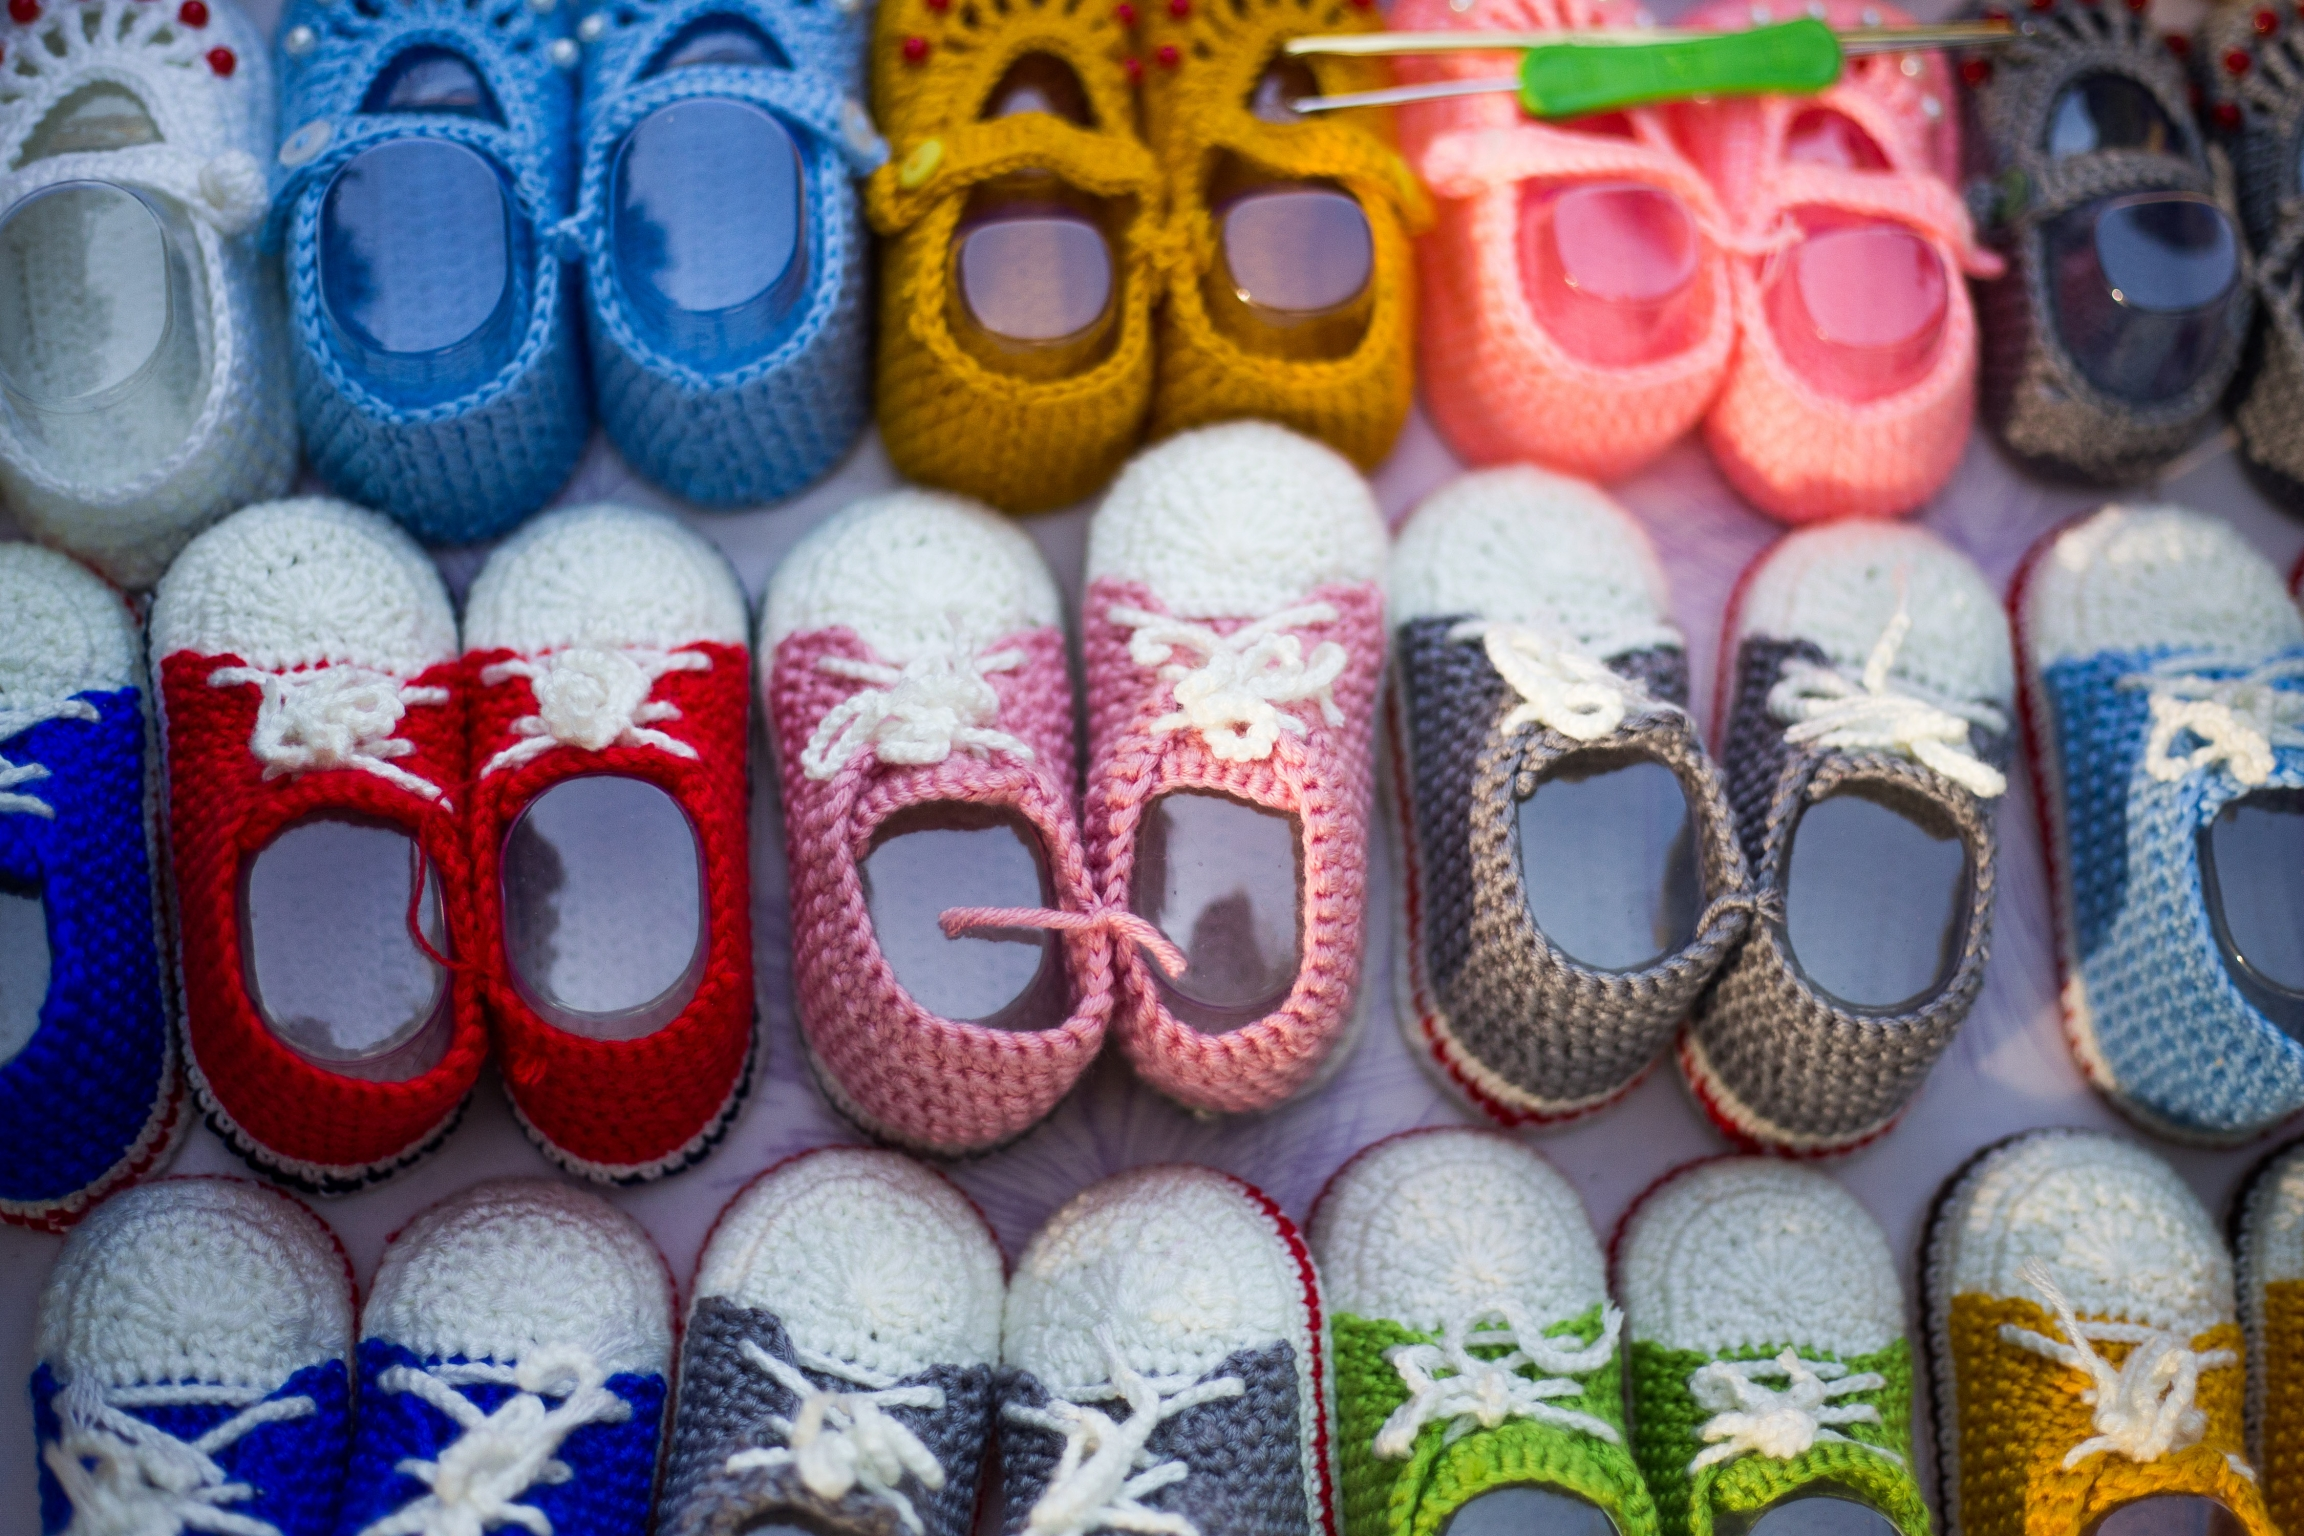 Colorful, knitted baby shoes